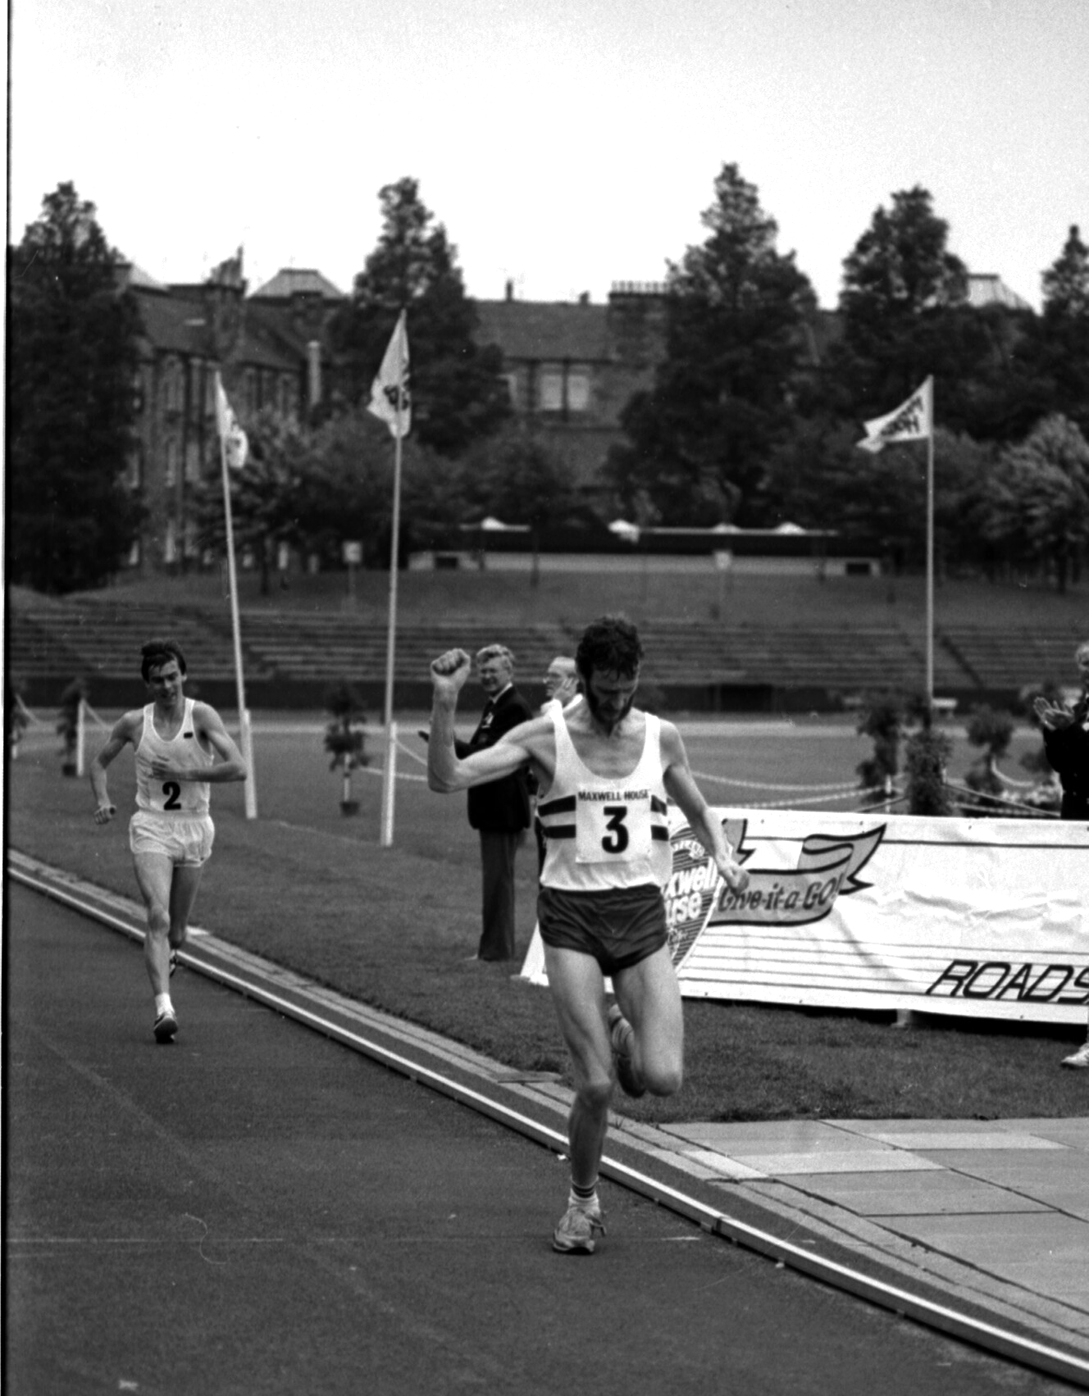 scottish AAA Marathon 1985 winner Evan Cameron